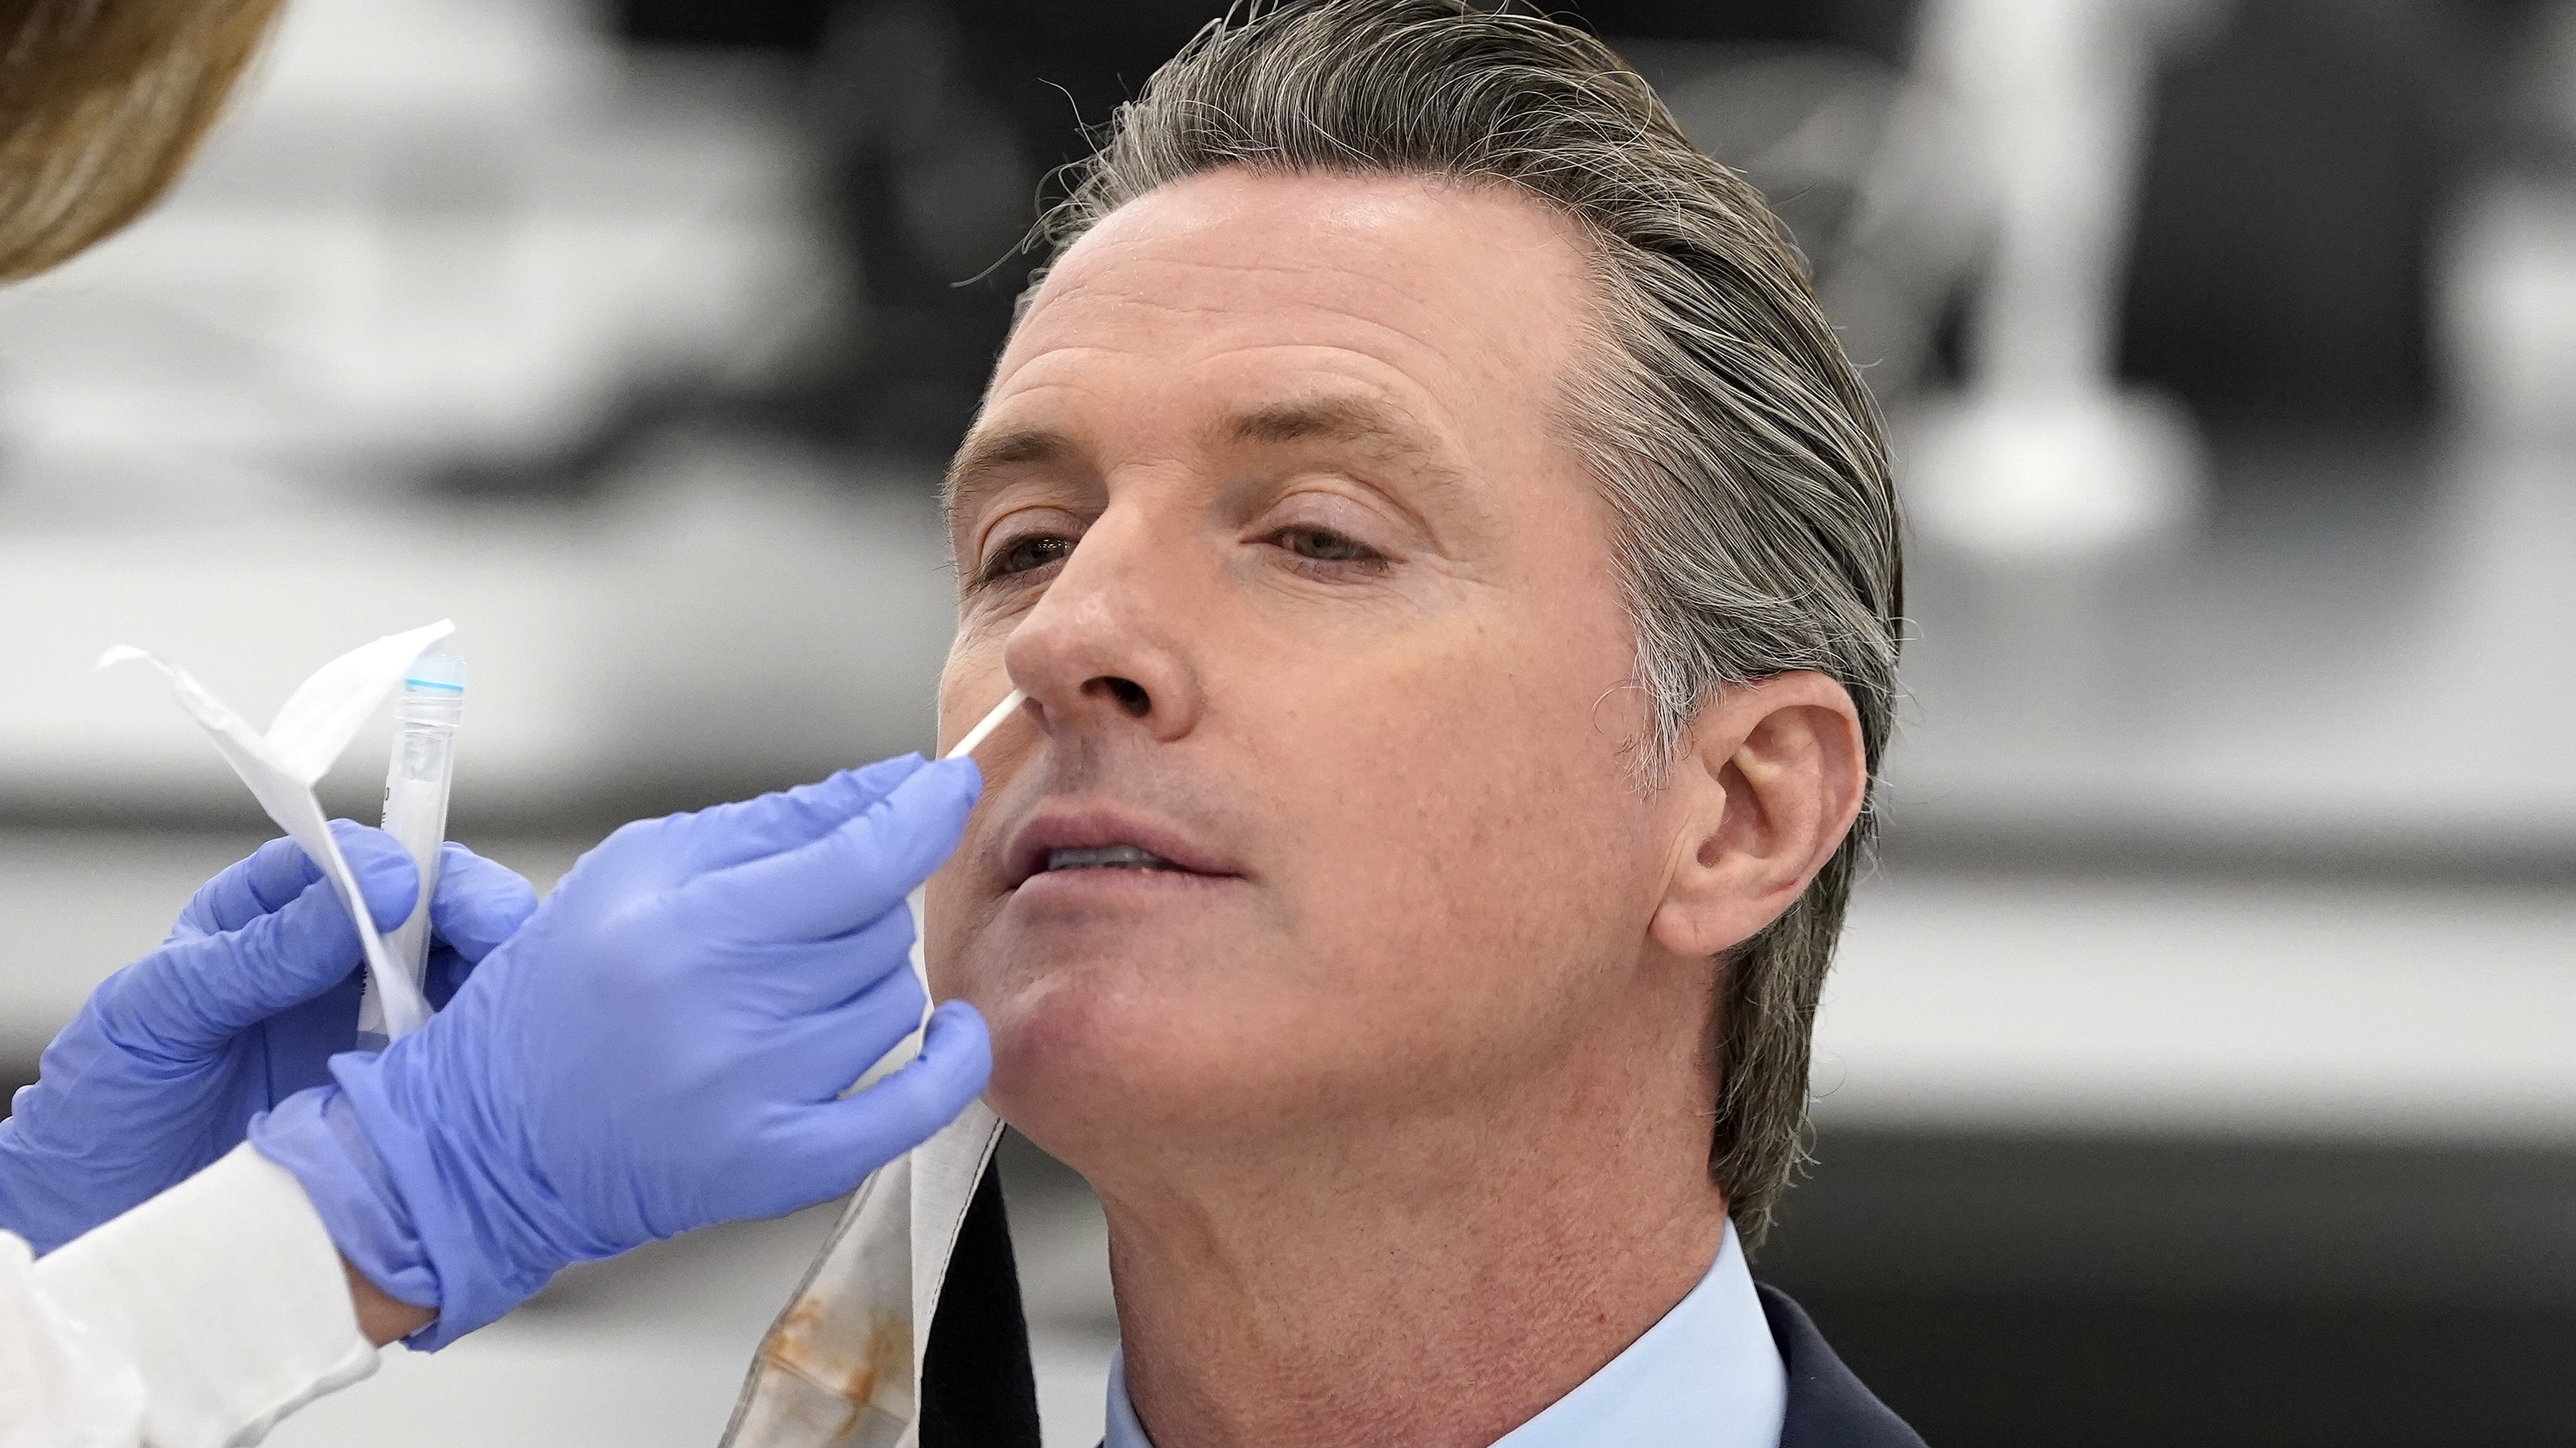 """California Gov. Gavin Newsom, pictured receiving a coronavirus test on Oct. 30, apologized to residents on Monday for attending a birthday party with too many guests. """"I need to preach and practice, not just preach,"""" he said."""